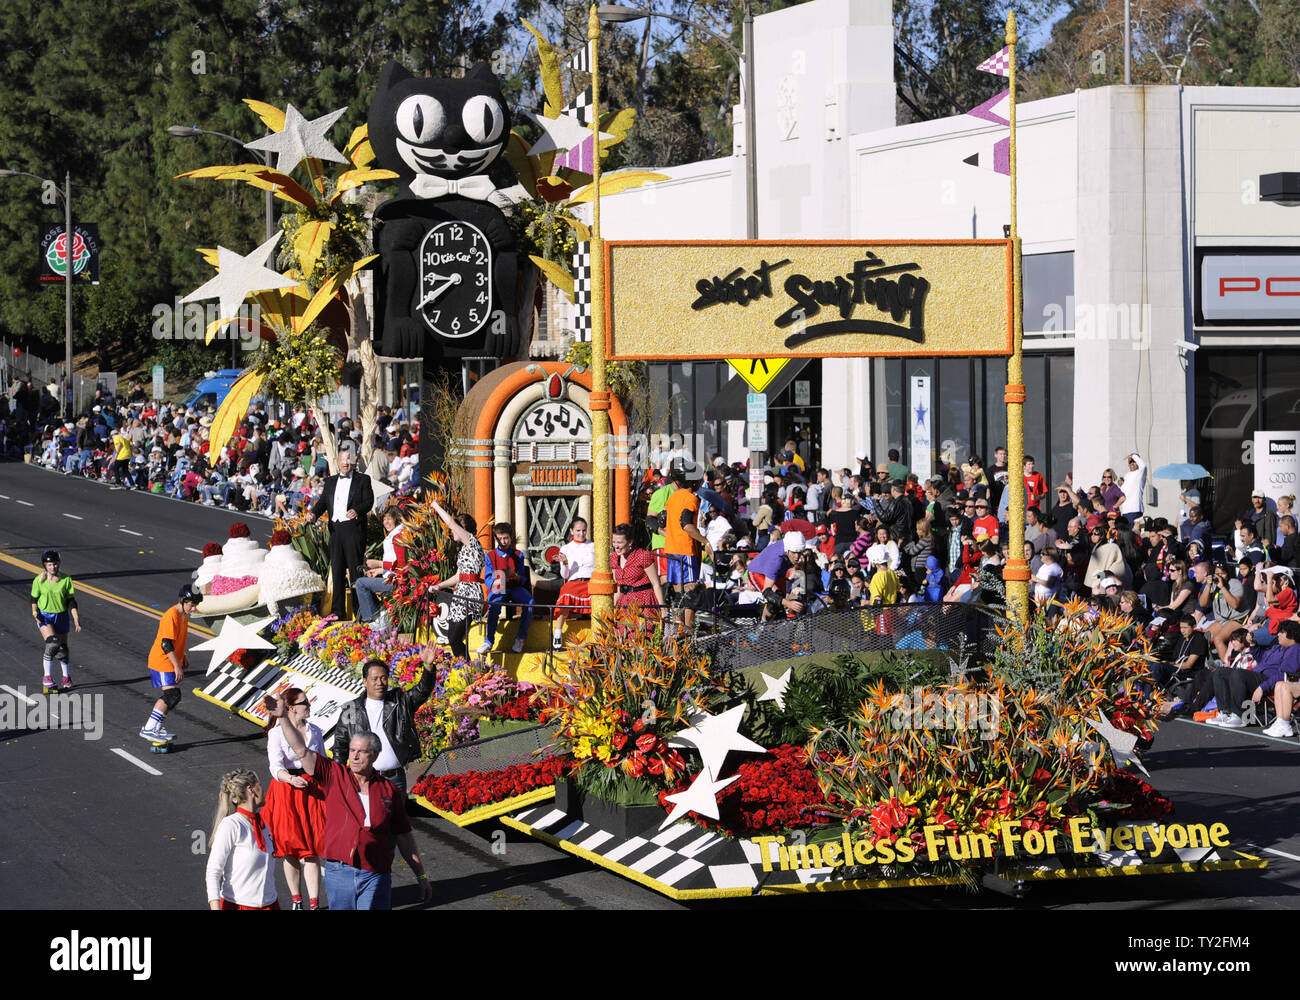 The California Clocks Company 'Timeless Fun for Everyone' float is seen in the 123rd Tournament of Roses Parade held in Pasadena, California on January 2, 2012.    UPI/Phil McCarten - Stock Image